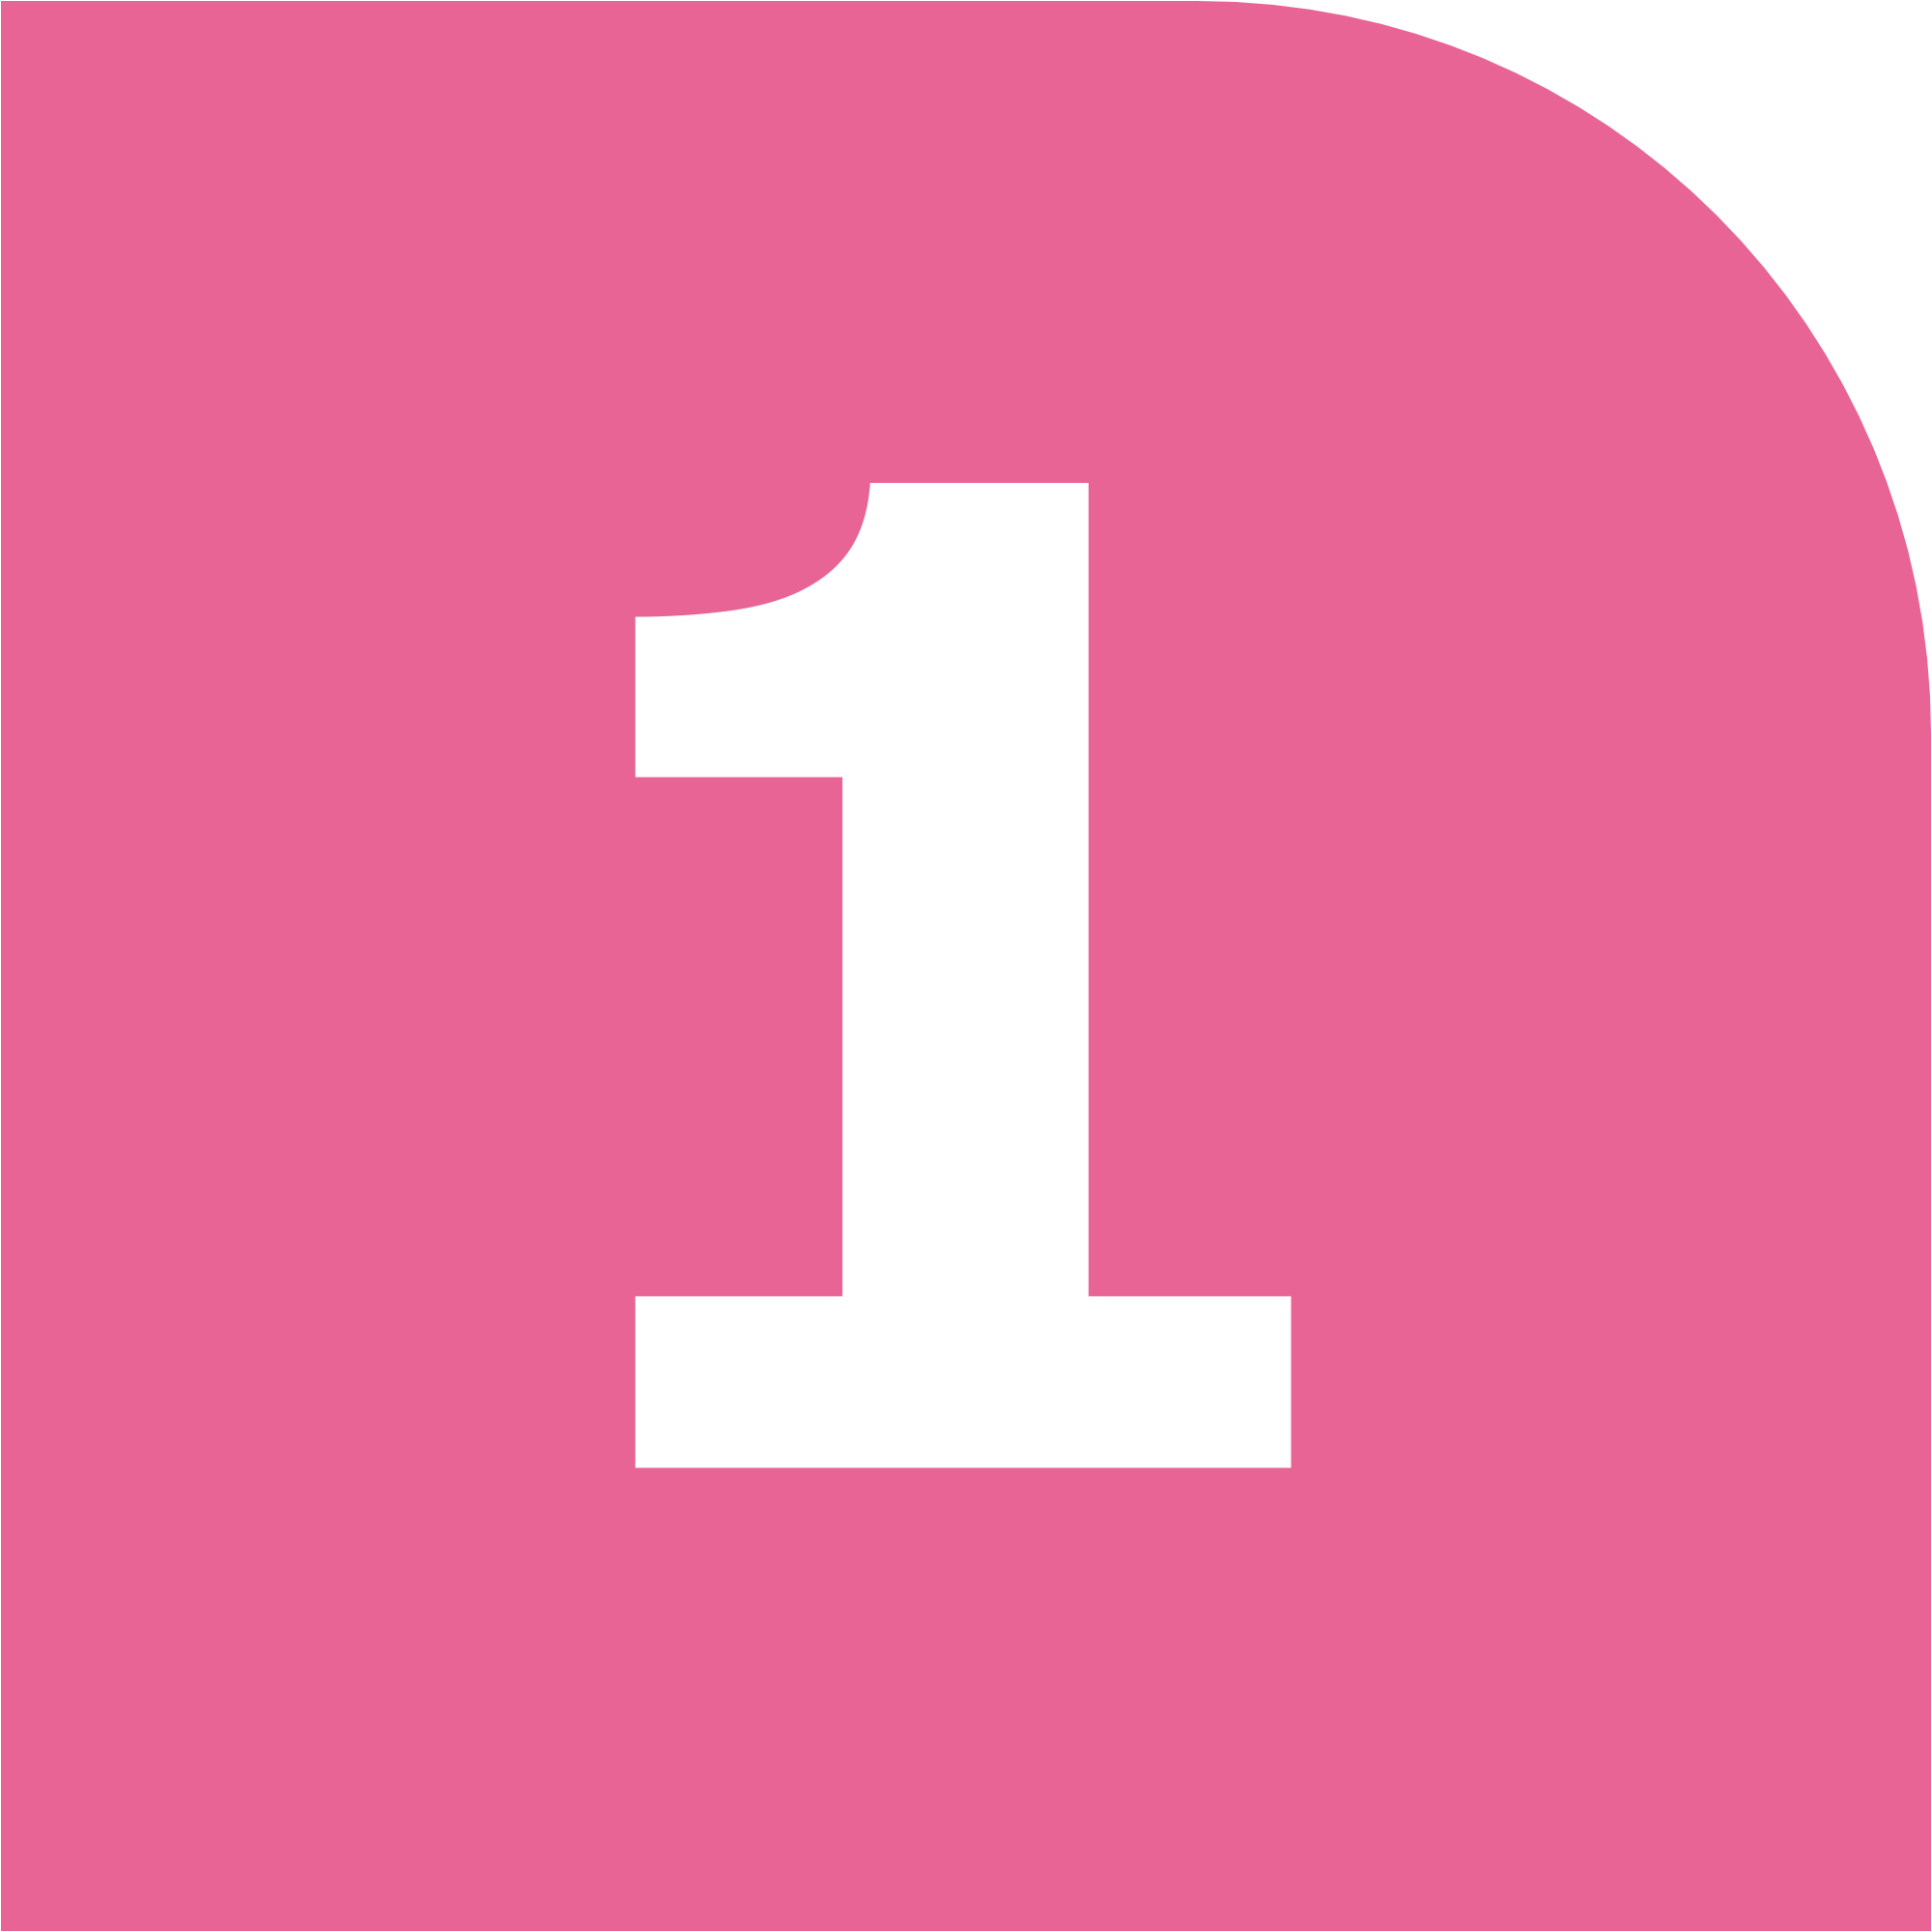 File:STC line 1 icon.png